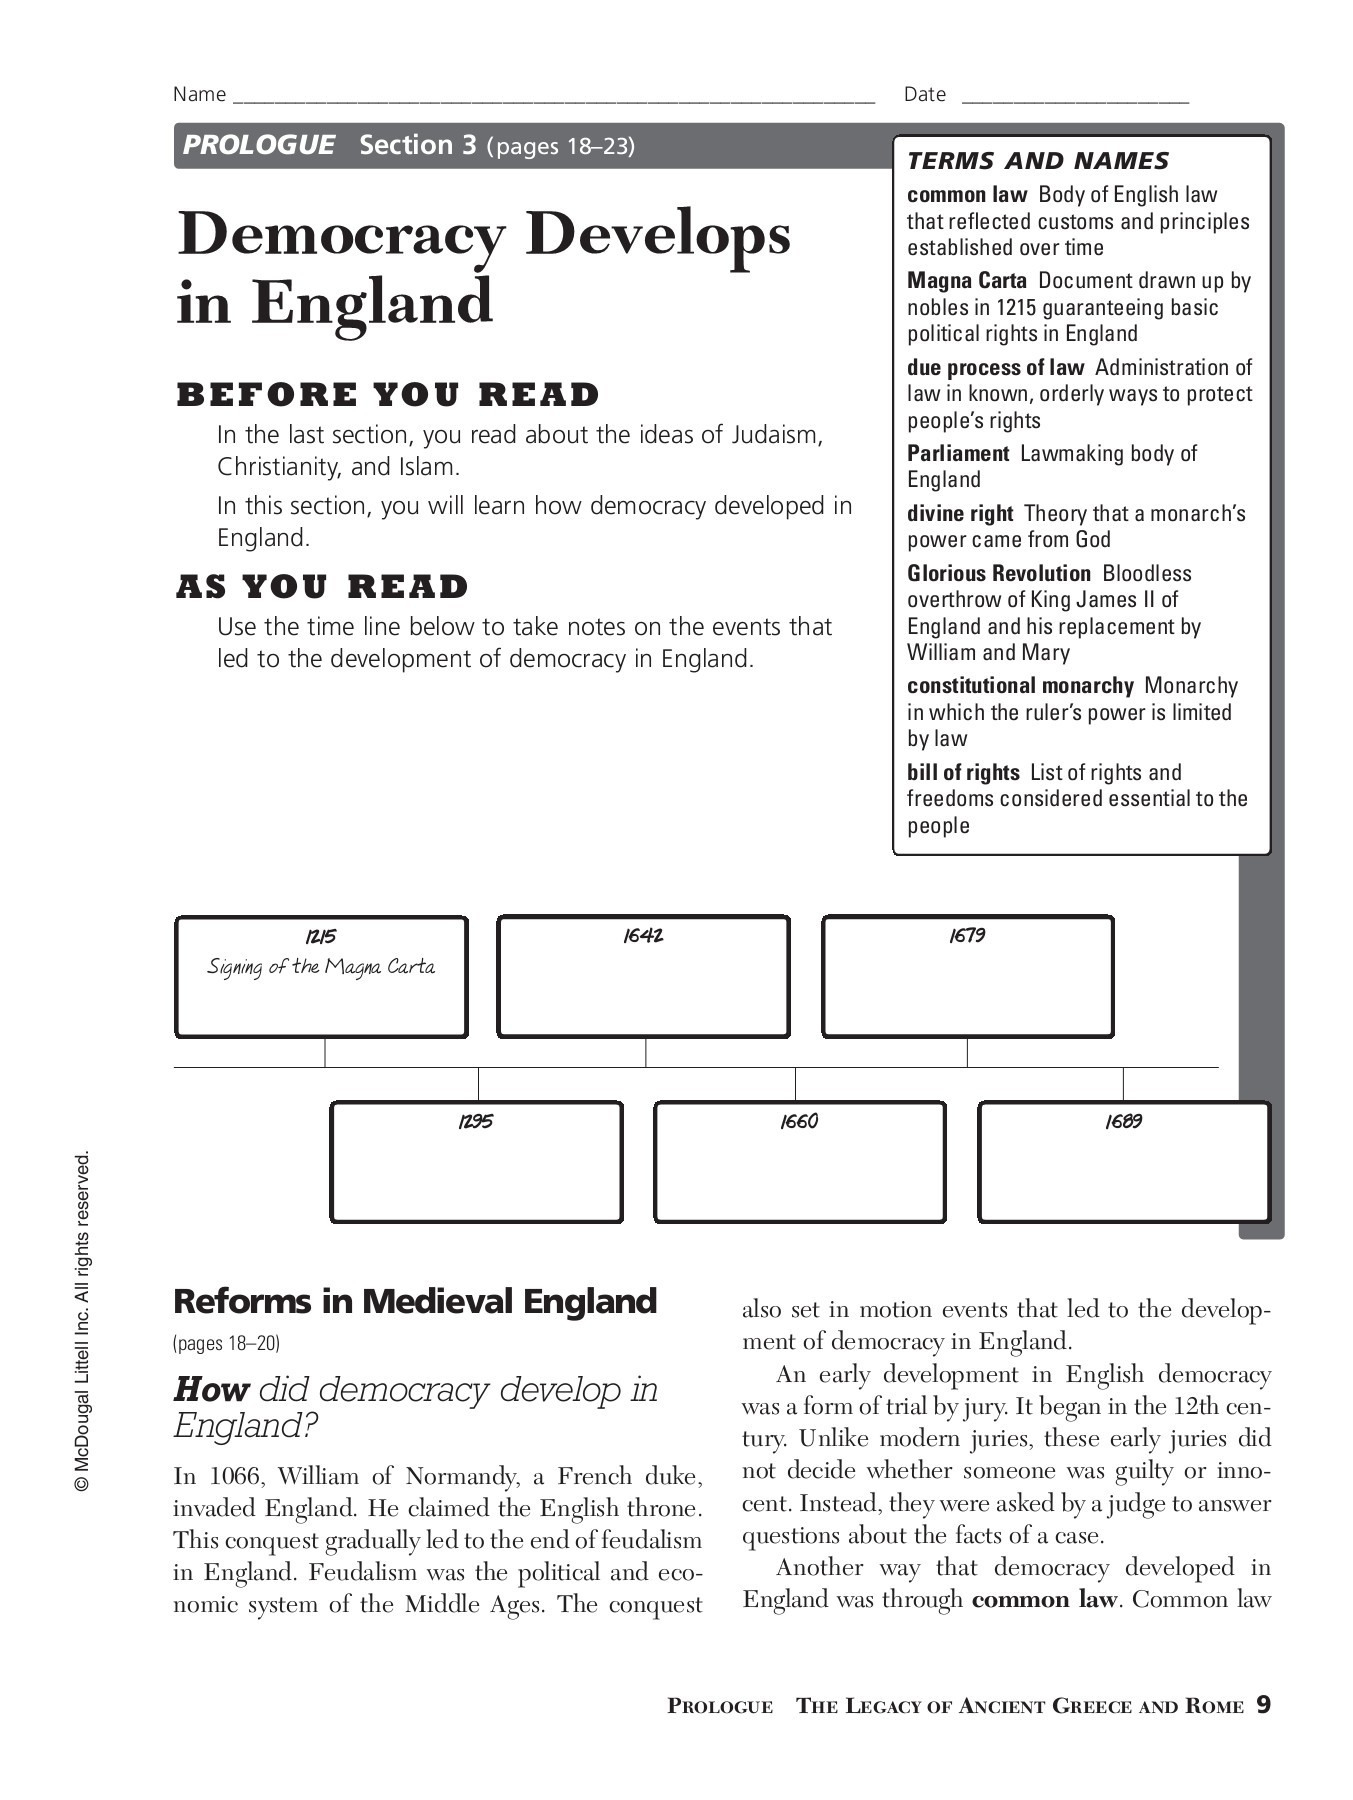 Democratic Developments In England Worksheet Answers